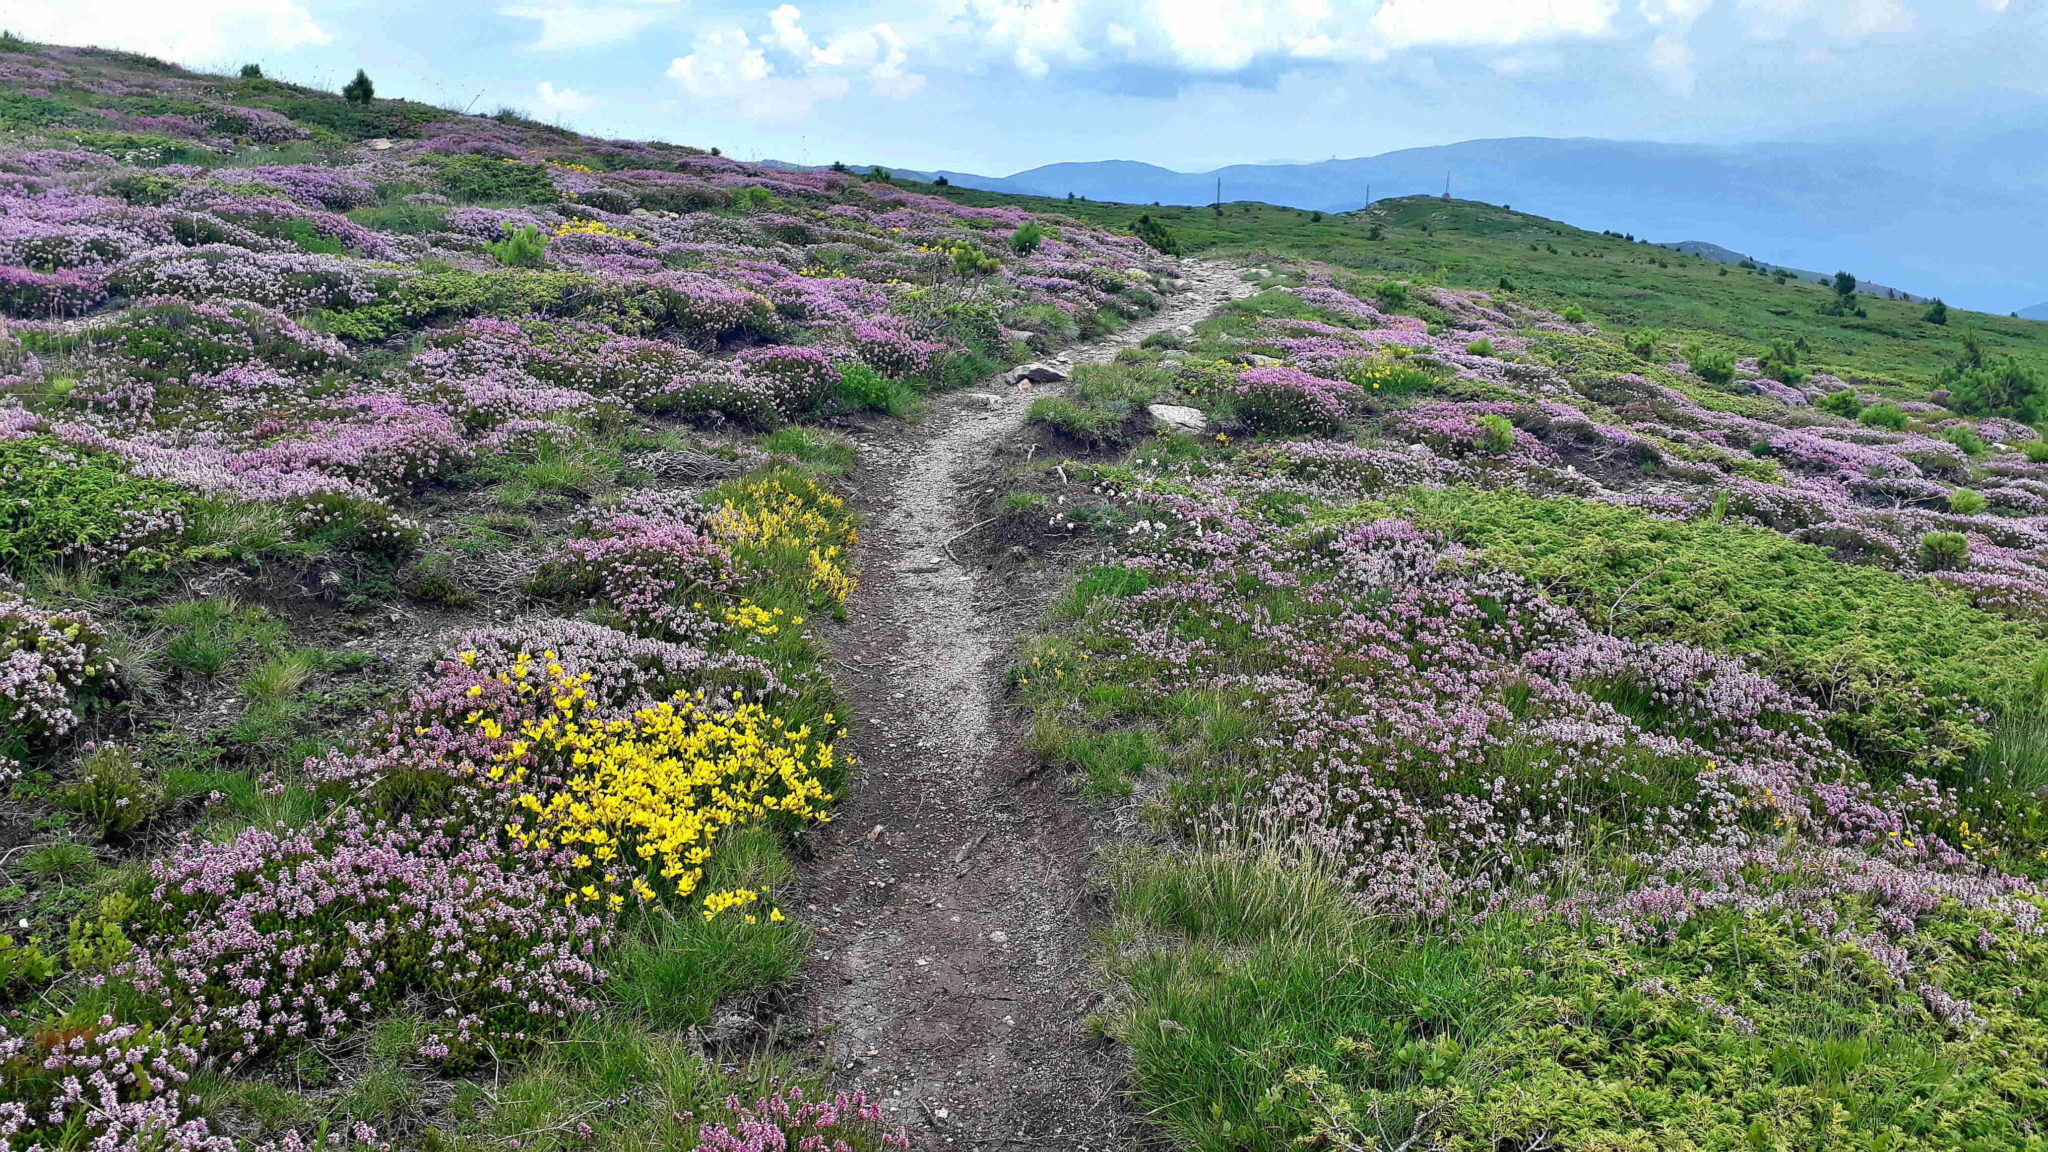 High-mountain path in Central Balkan